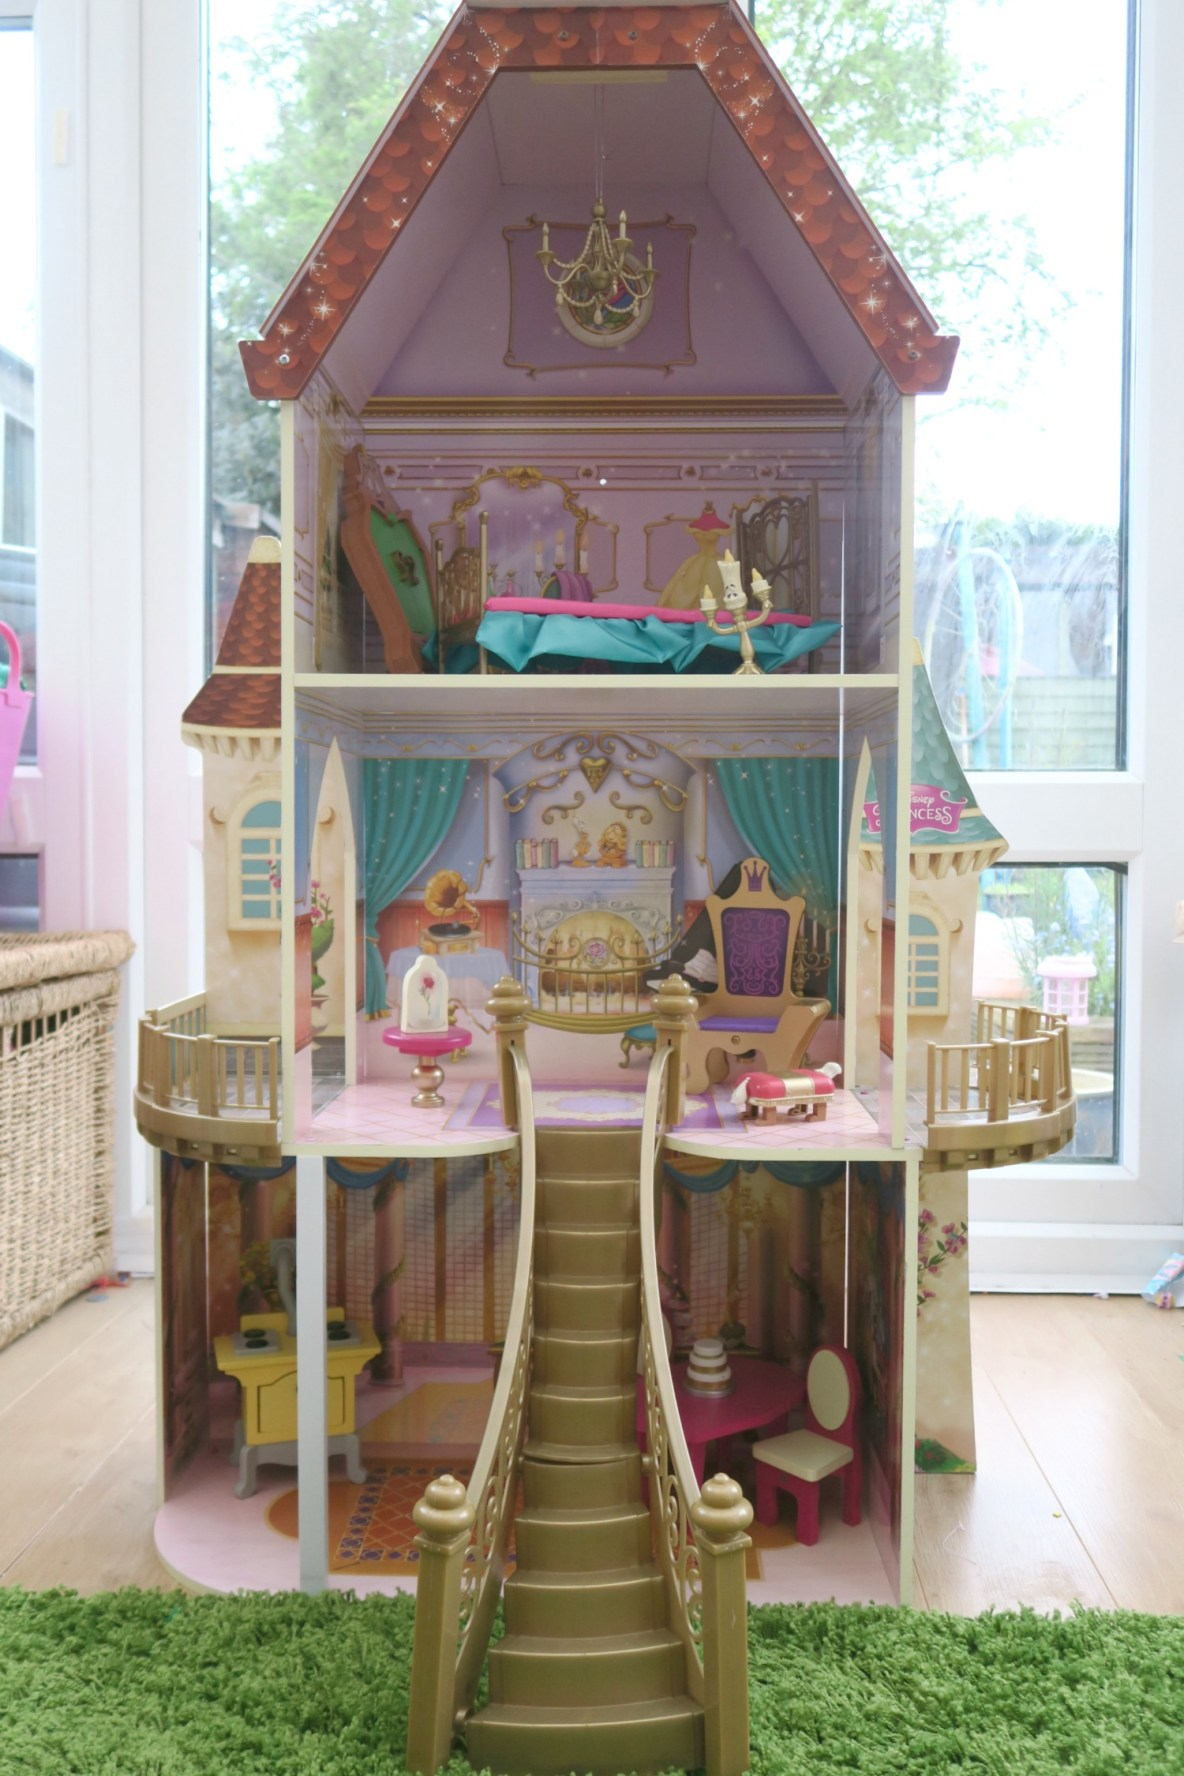 ReviewsKidKrafts Belle Enchanted Dollhouse is home to Beauty and The Beast princess Belle…